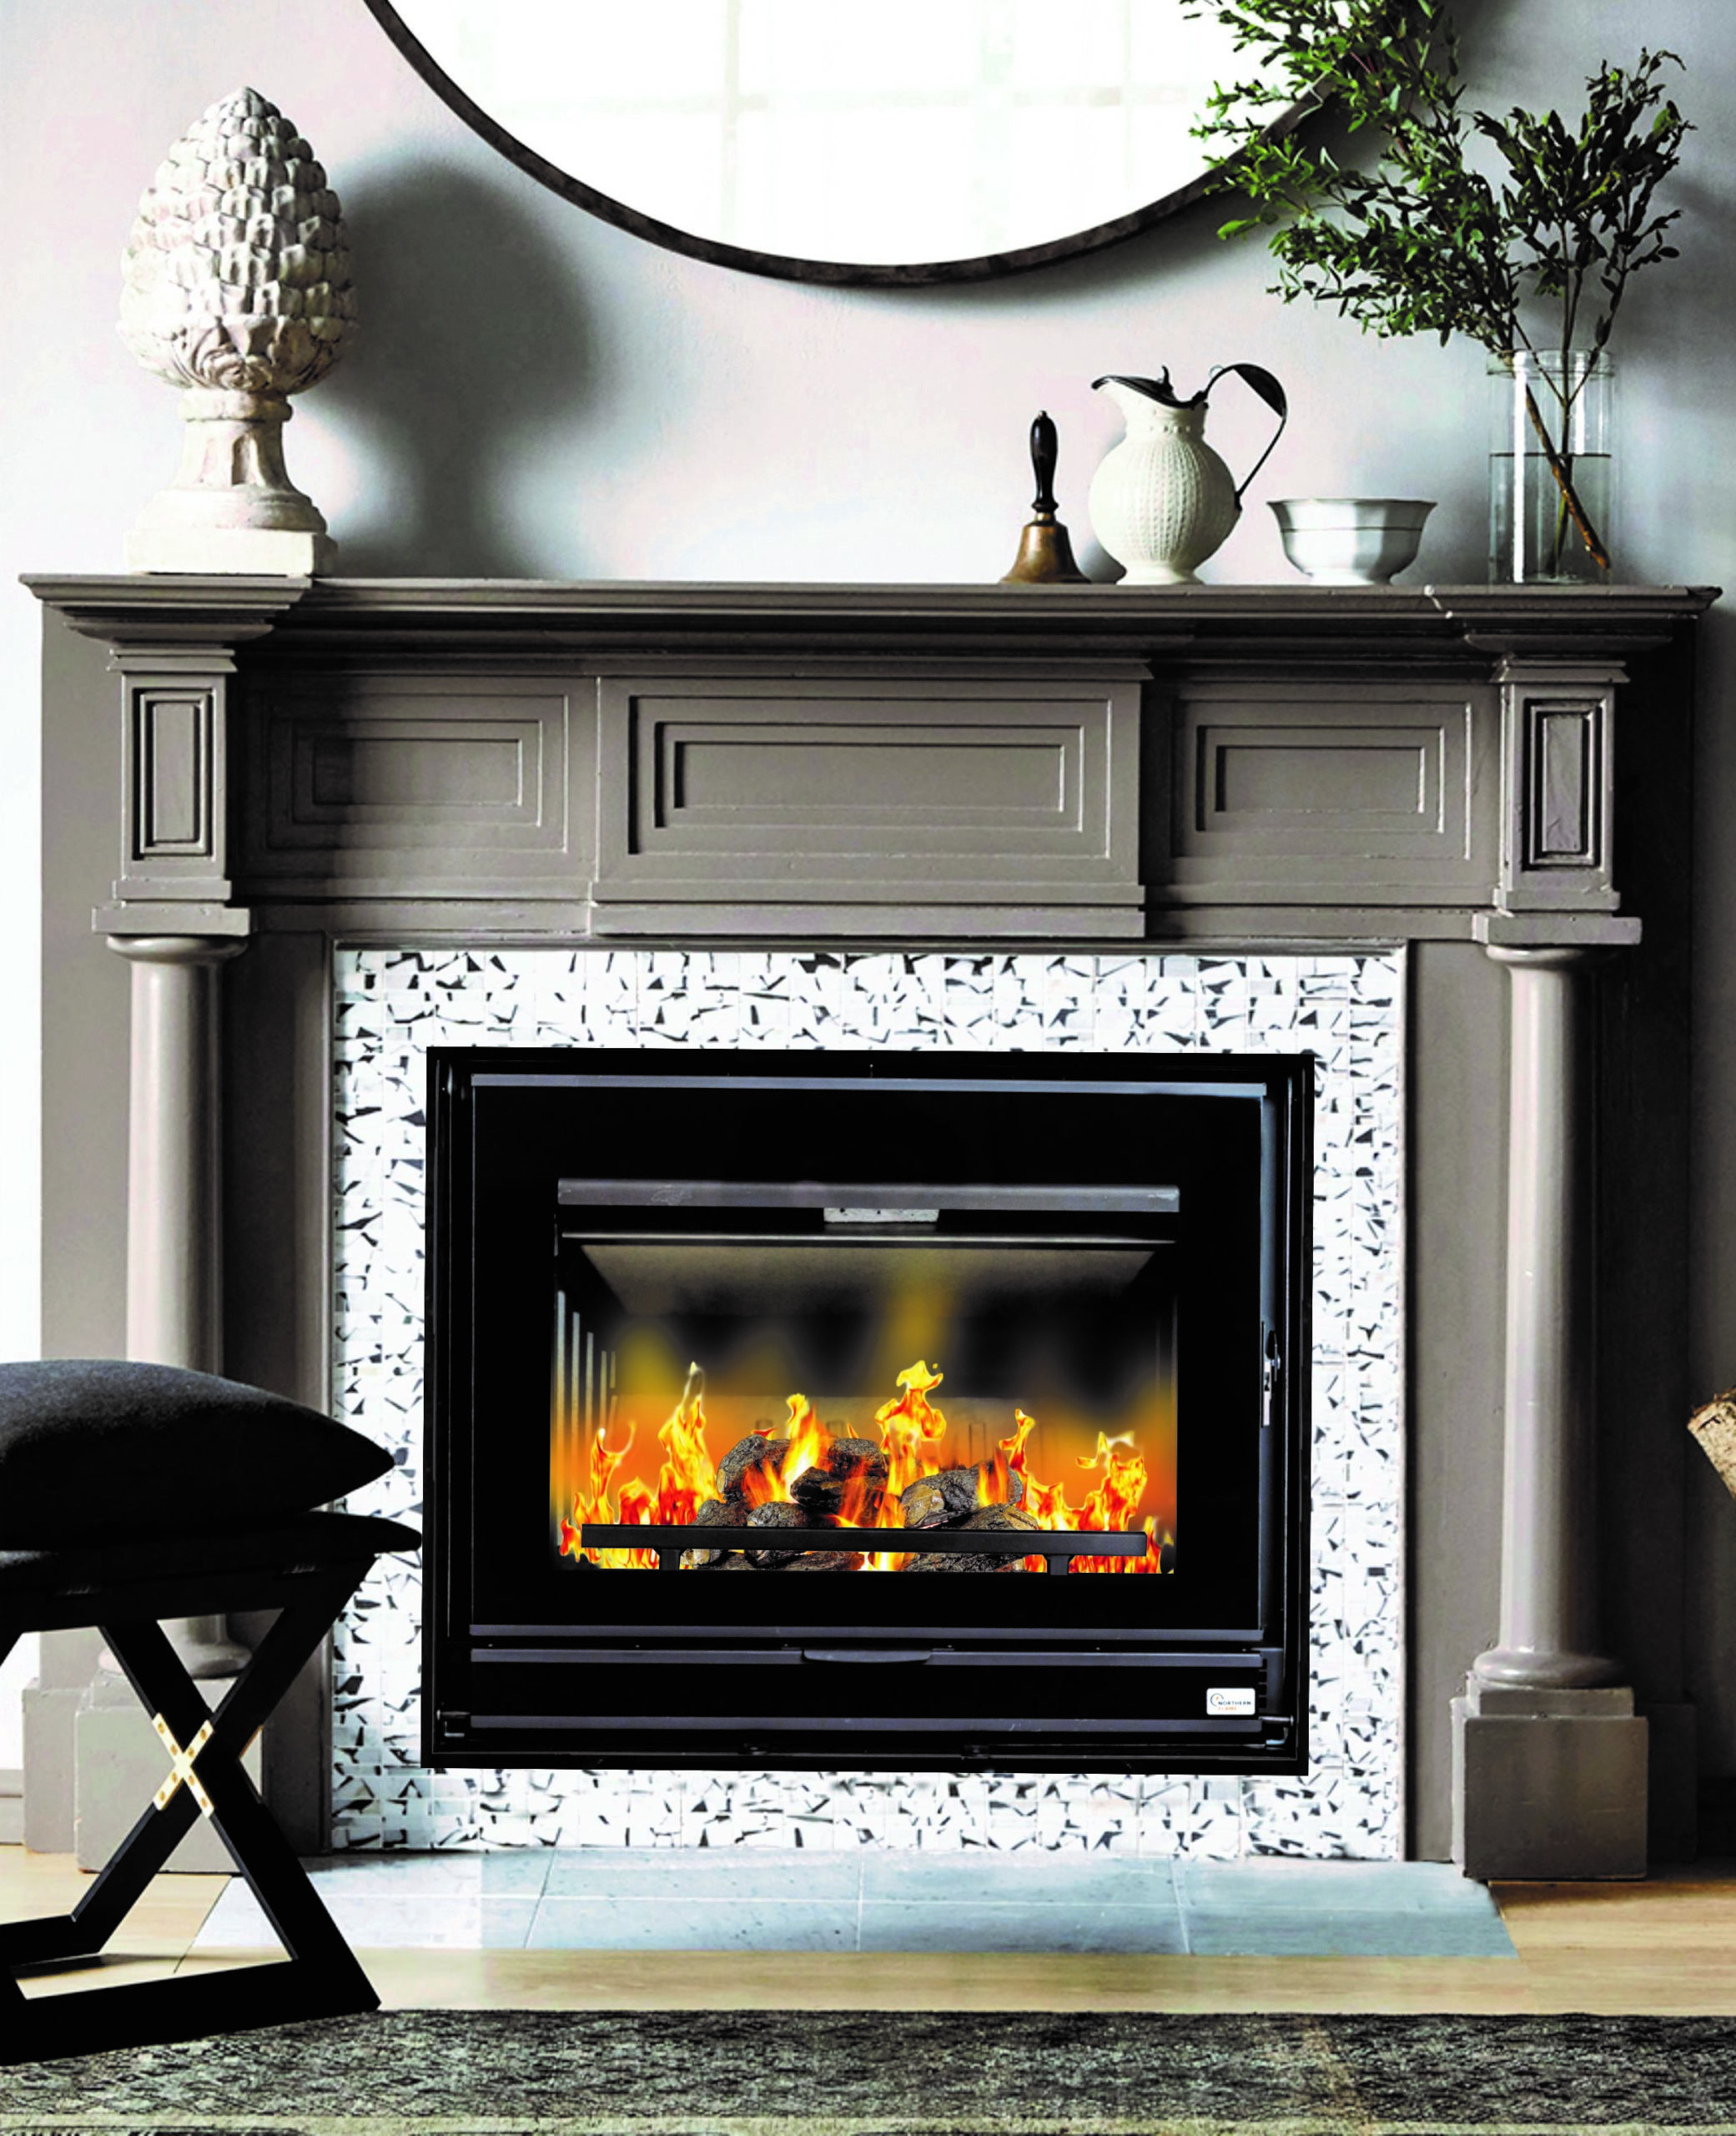 Fireplace Grate with Blower Inspirational northern Flame Vesta 70